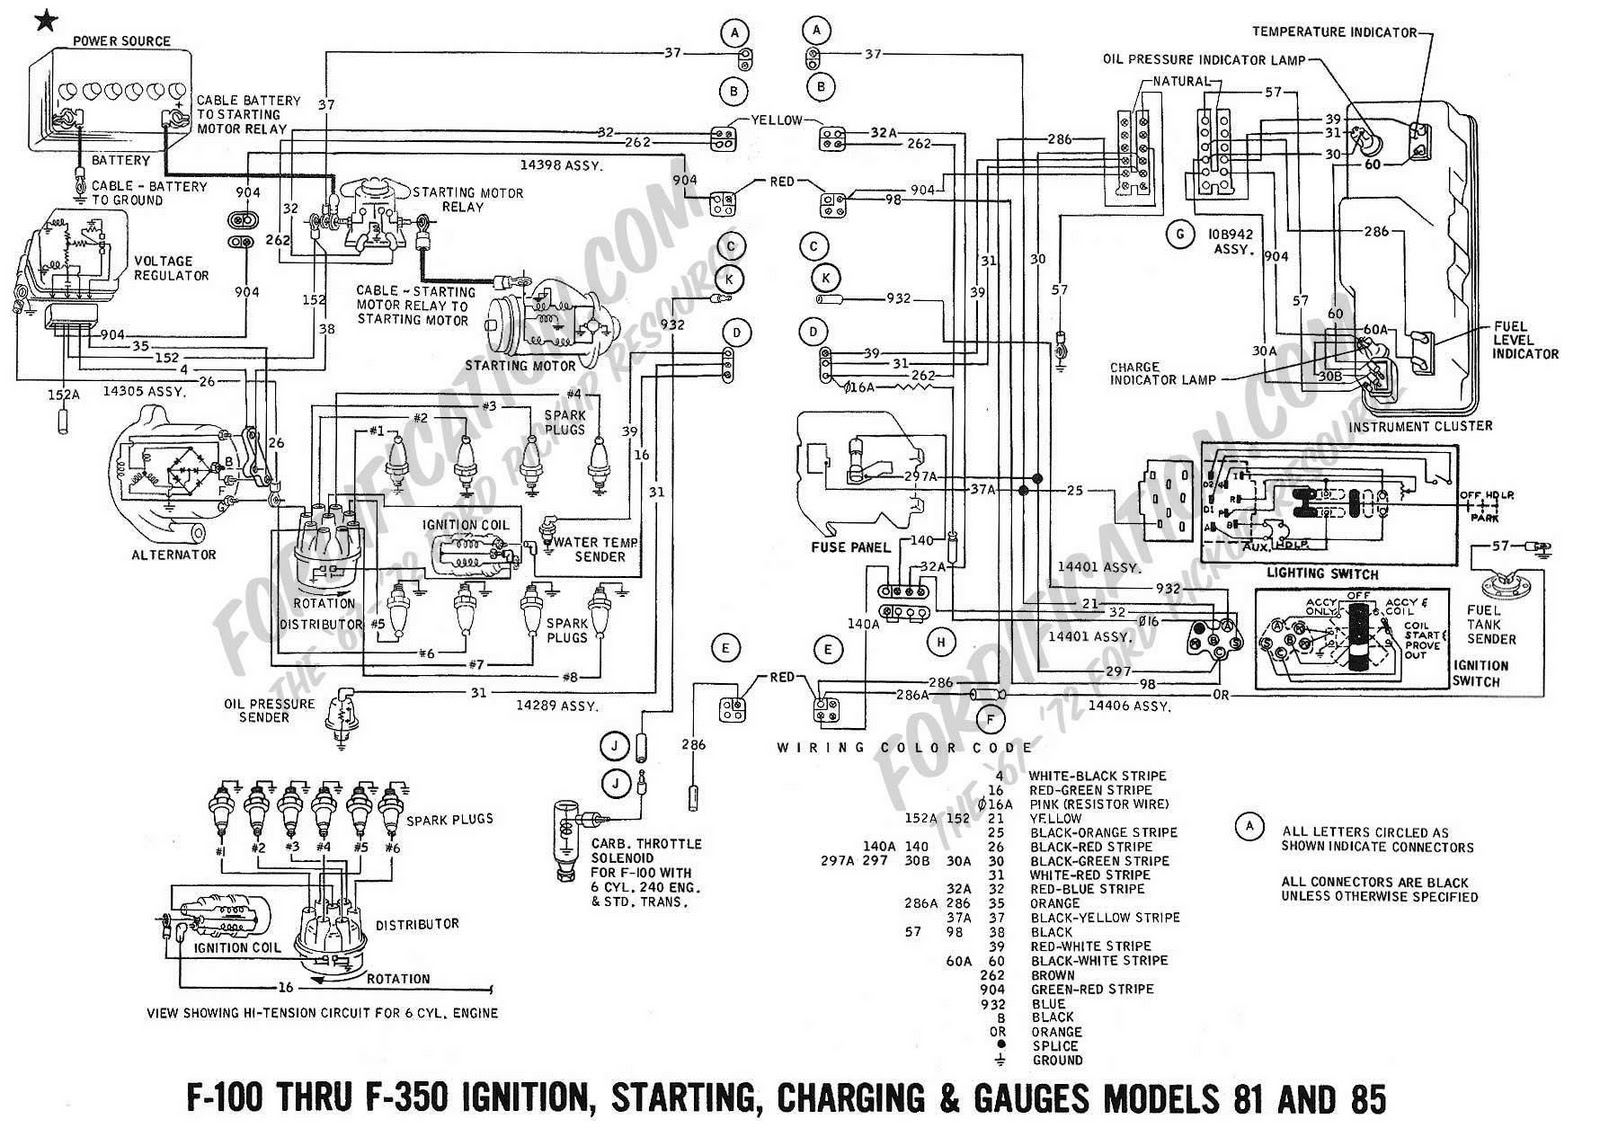 1969 ford f100 f350 ignition starting charging and 1946 ford headlight wiring diagram 1983 ford headlight wiring diagram